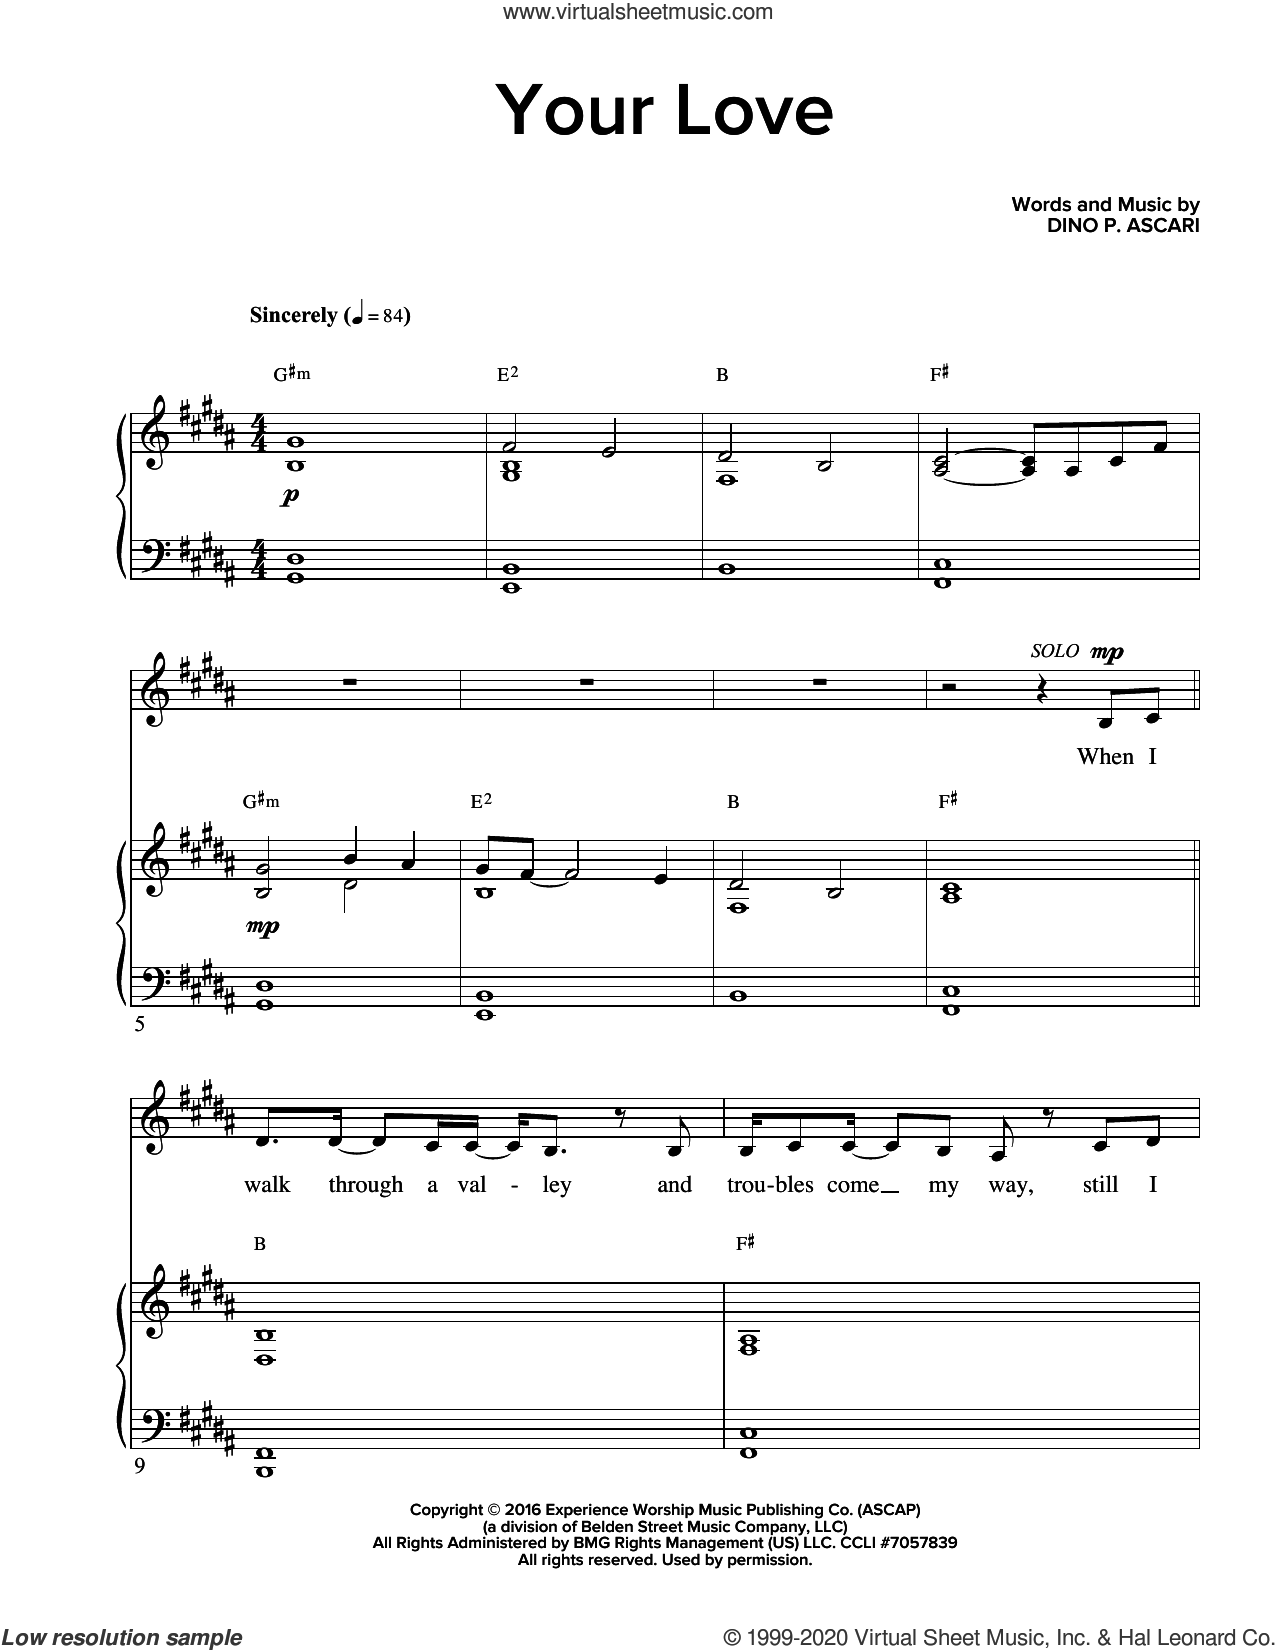 Your Love sheet music for voice and piano by Dino P. Ascari, intermediate skill level